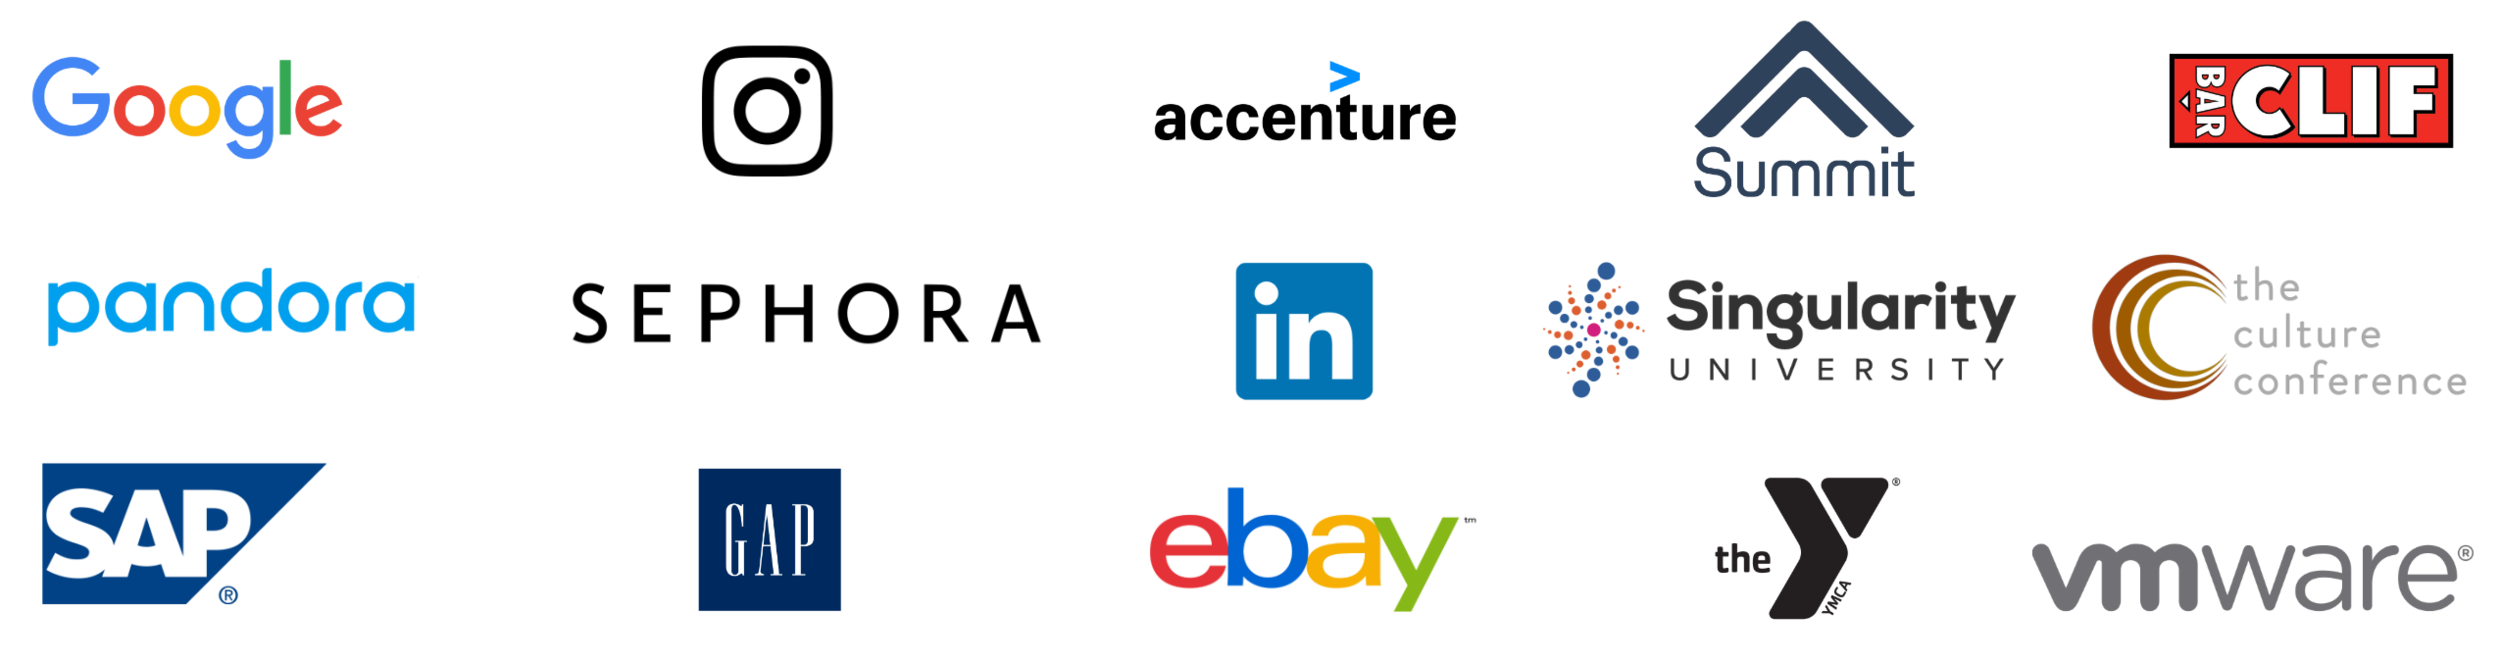 client-logos-late-nite-art-universal-use.png